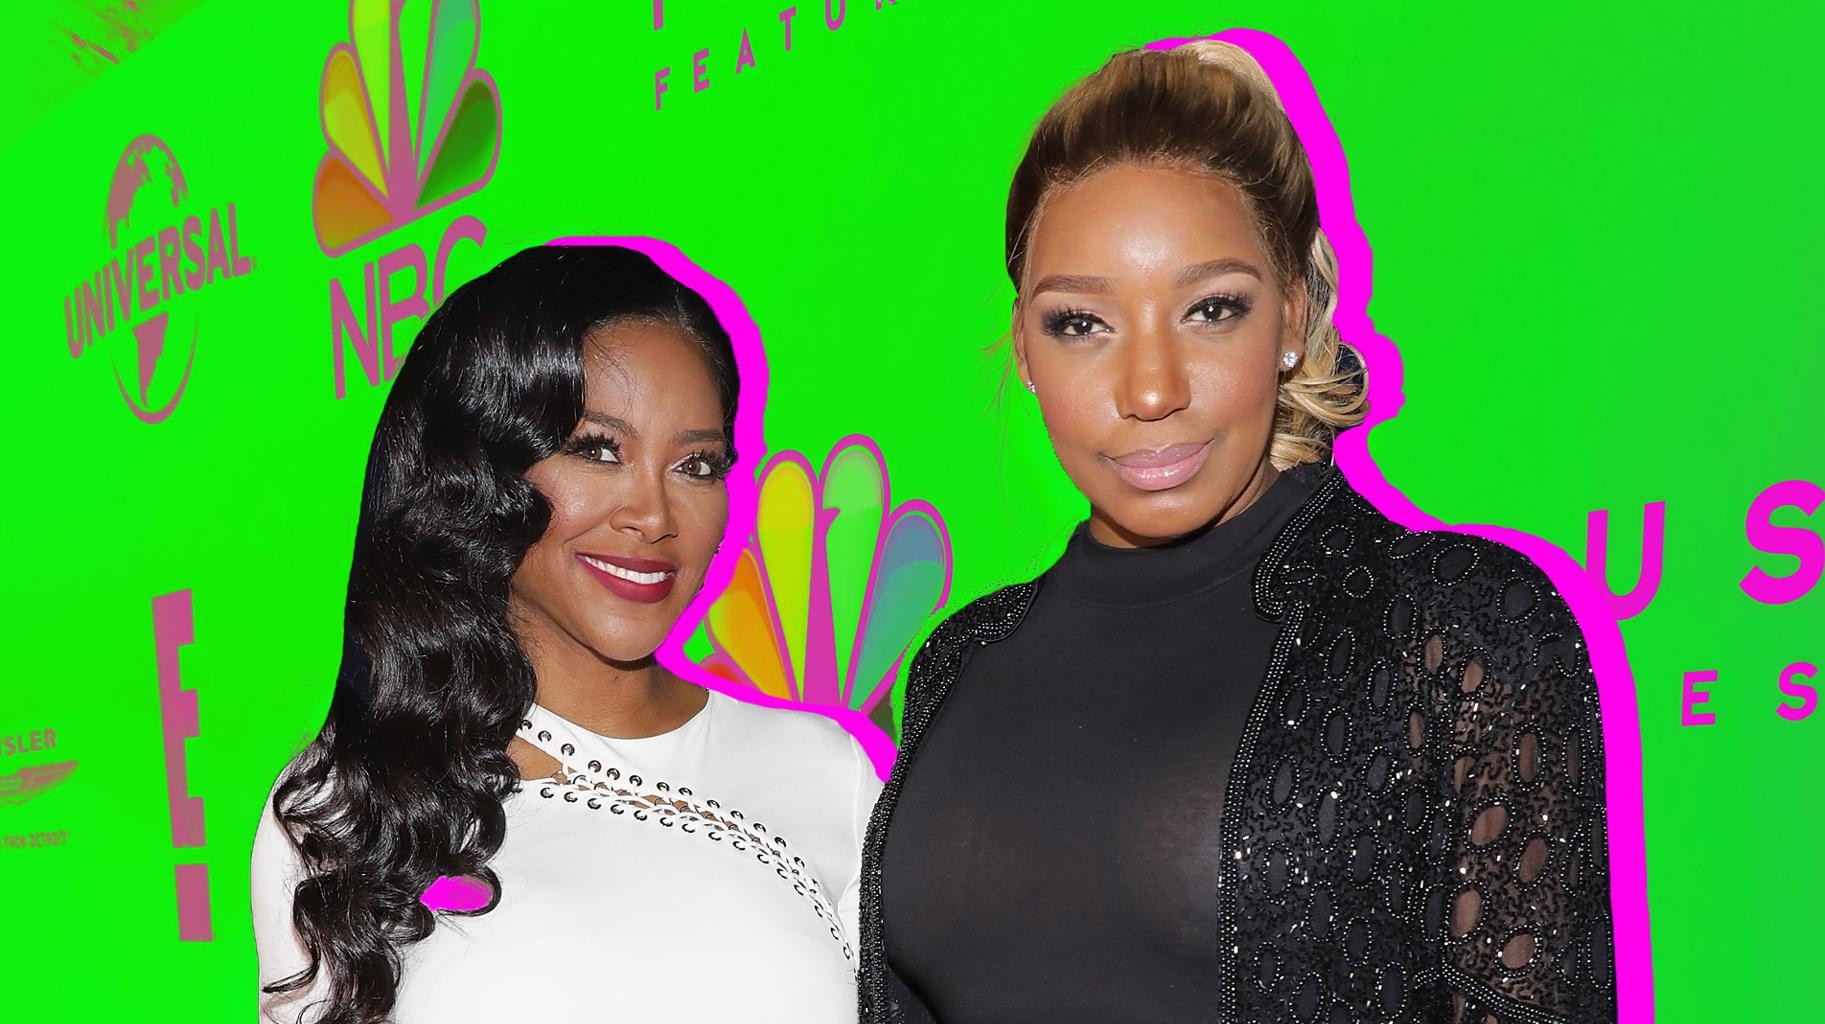 NeNe Leakes Says That The Door Is Open For Kenya Moore And Phaedra Parks In Her World - Watch The Video